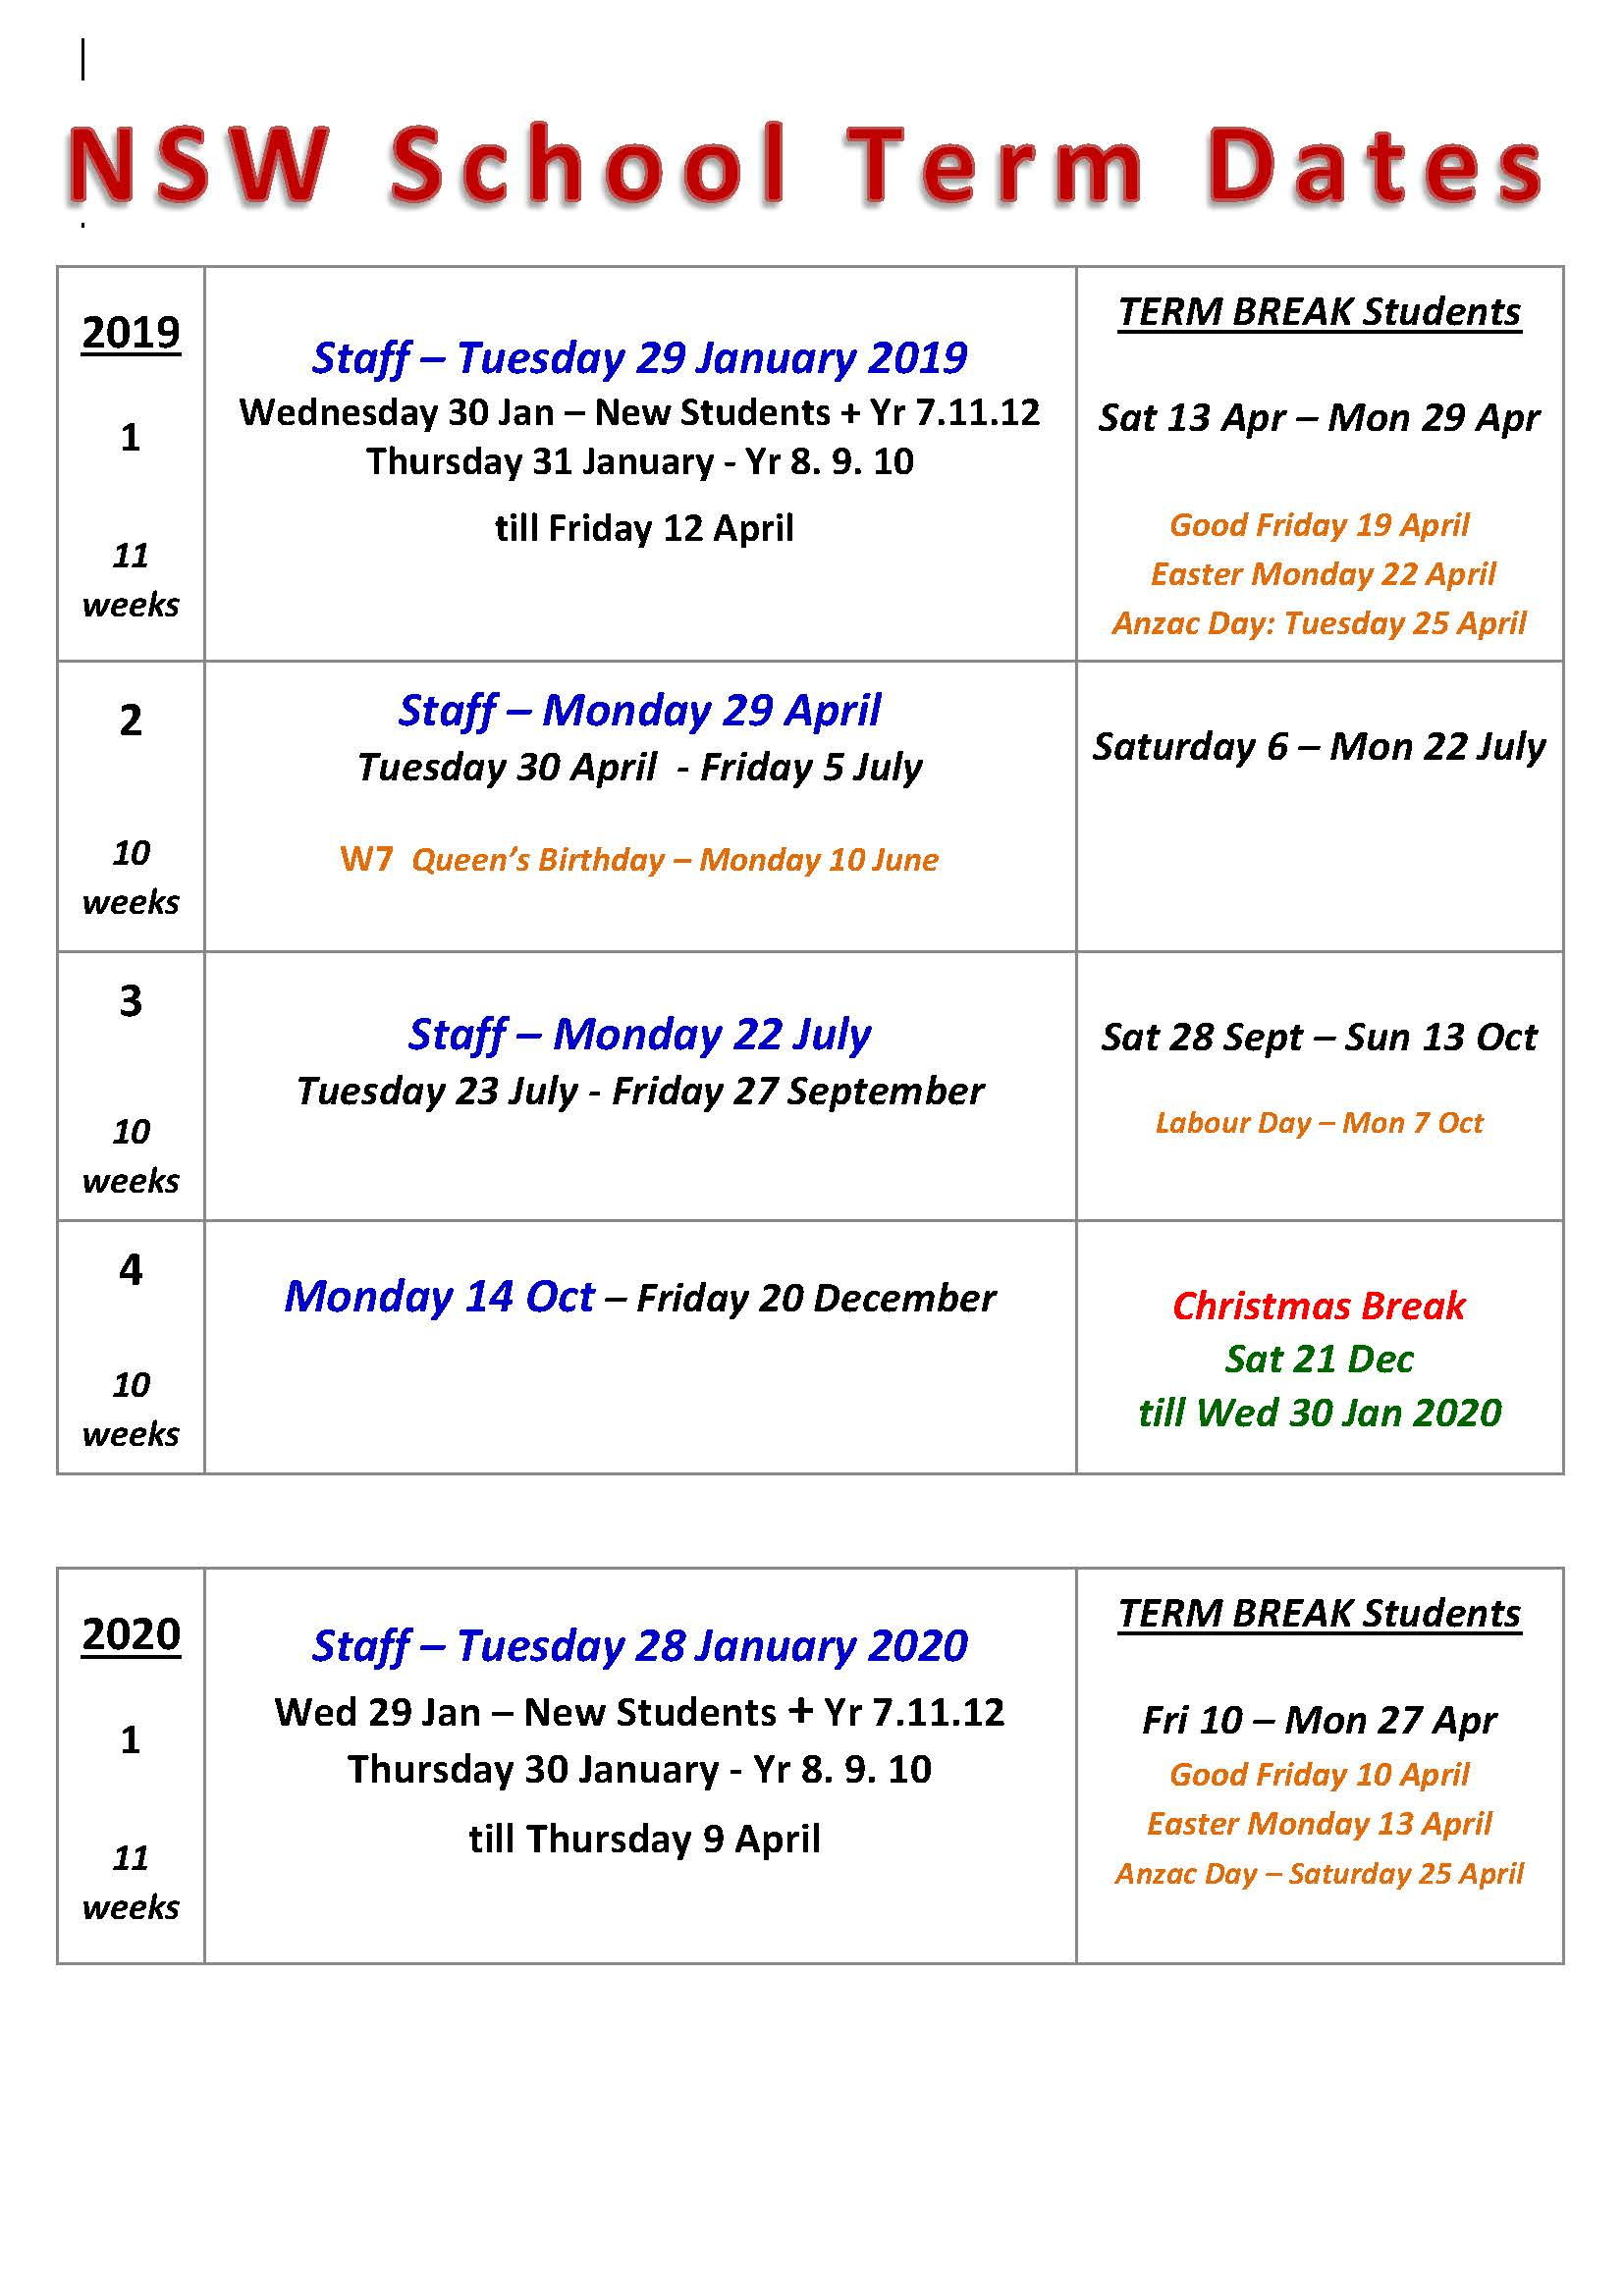 NSW School 2020 Holidays List